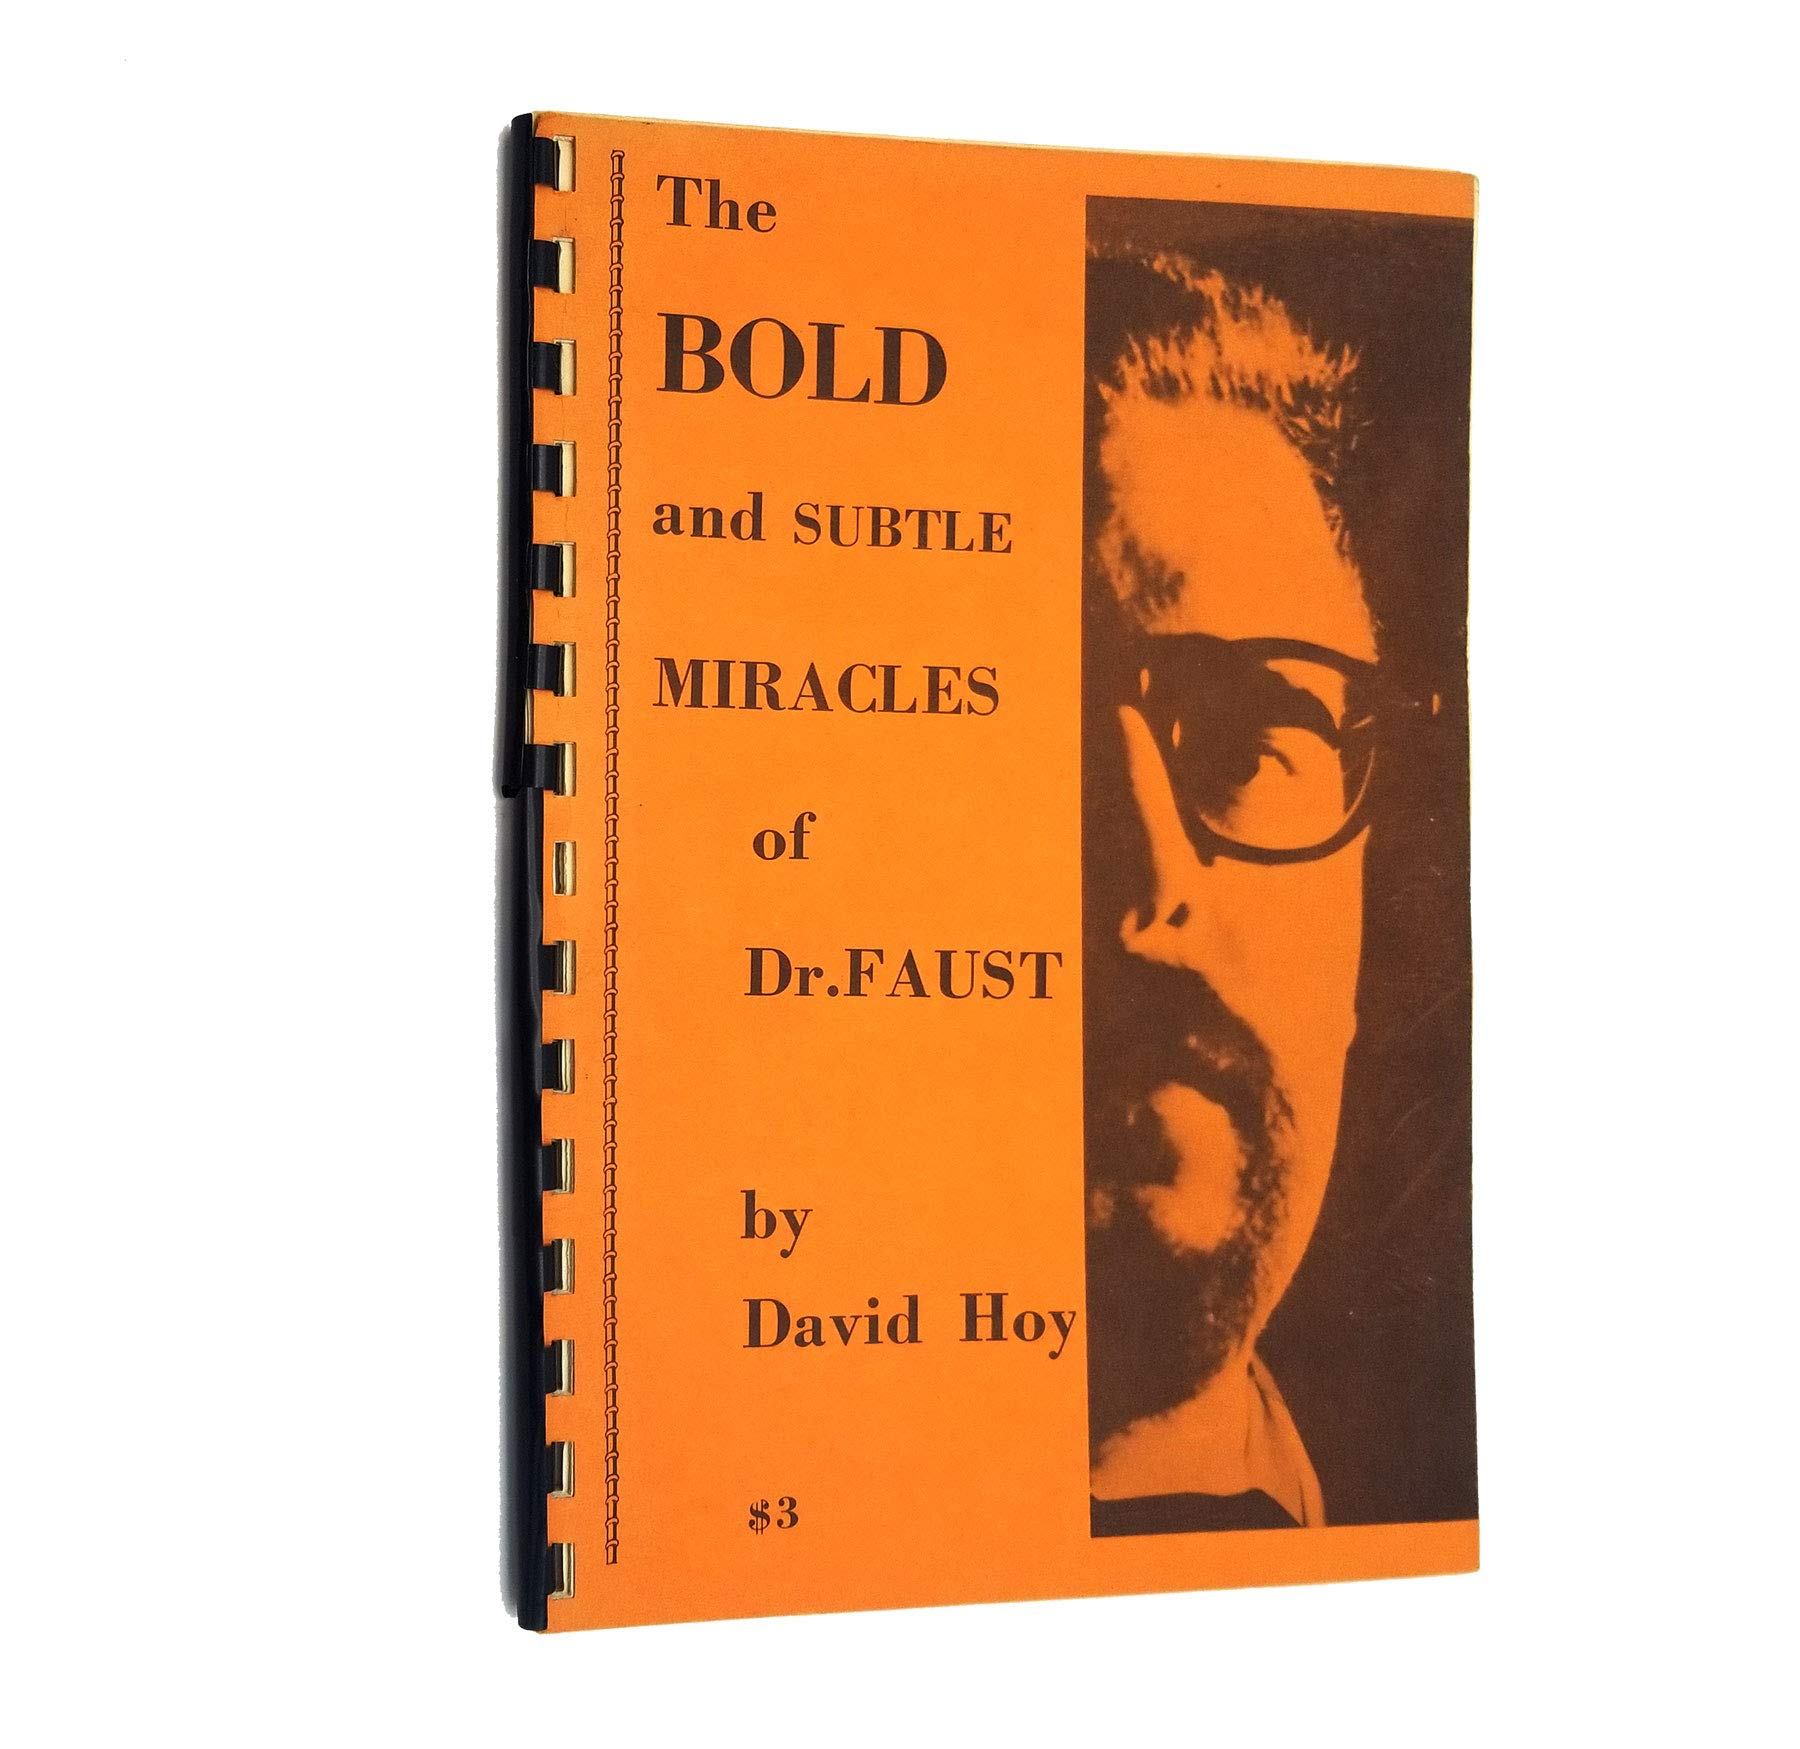 21b185b7116 The Bold and Subtle Miracles of Dr. Faust: David Hoy: Amazon.com: Books